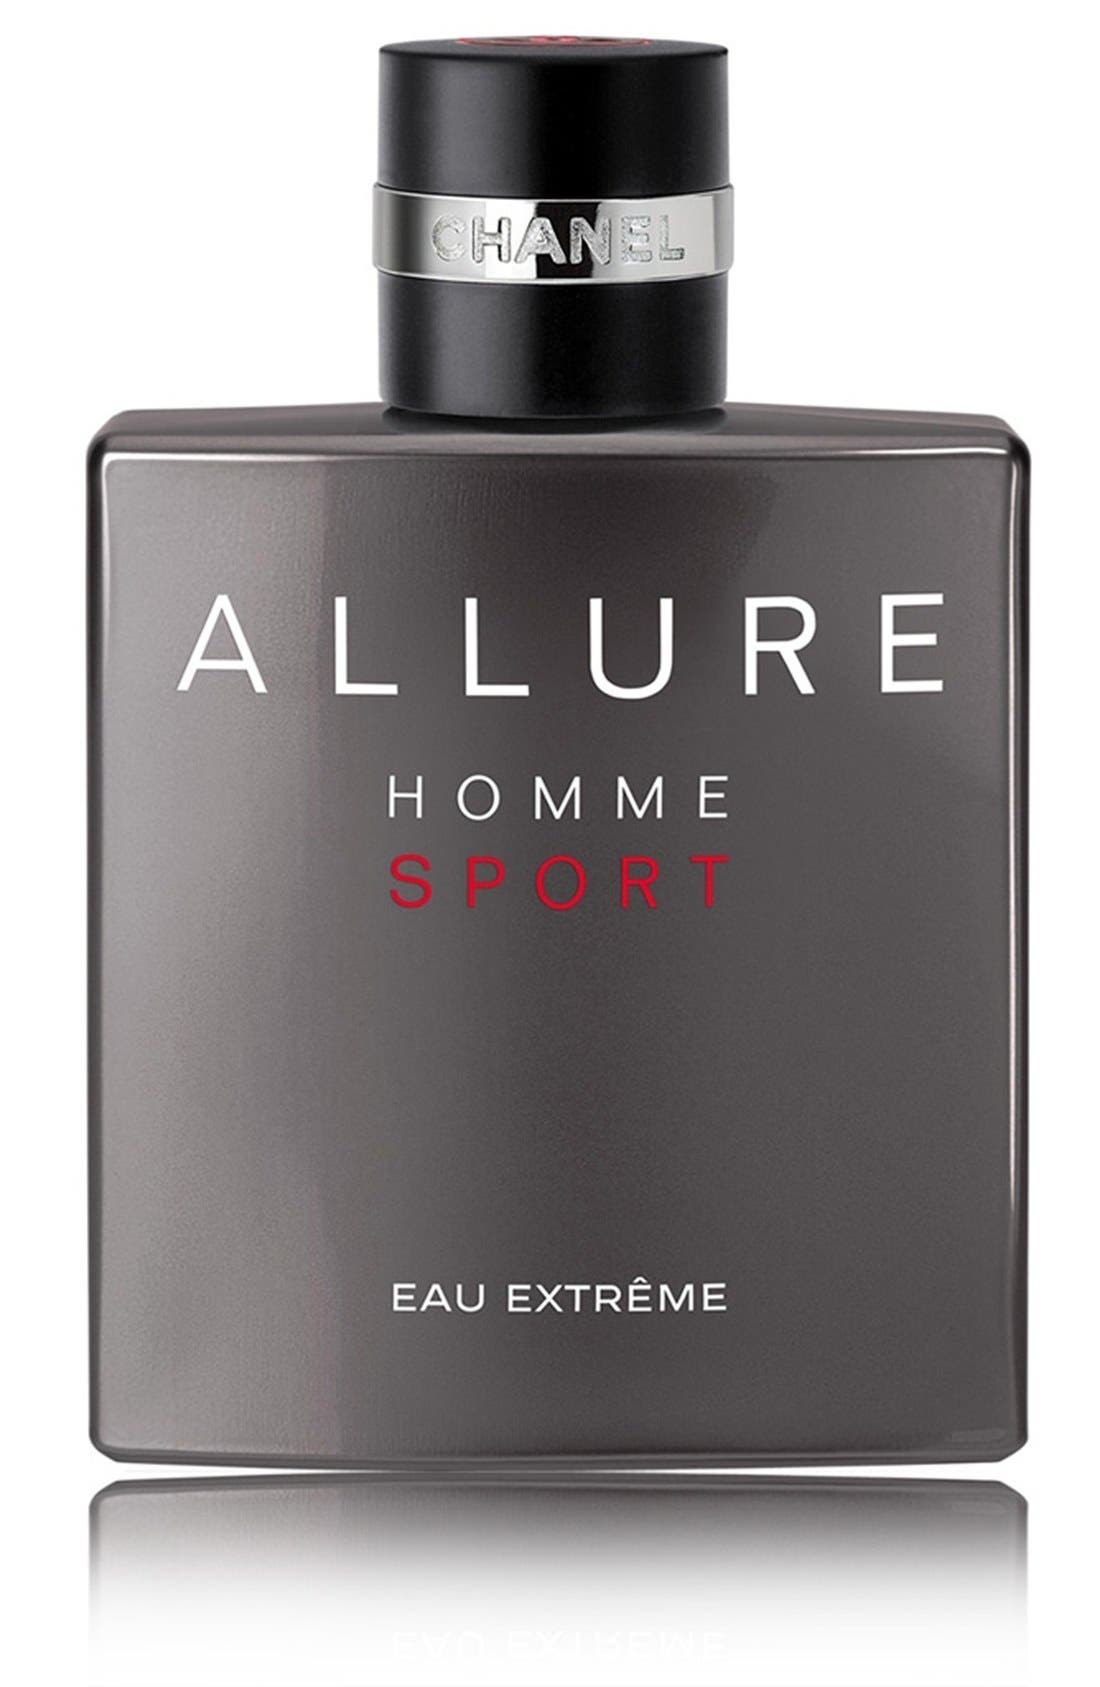 CHANEL, ALLURE HOMME SPORT EAU EXTREME Eau de Parfum, Main thumbnail 1, color, NOL COLOR